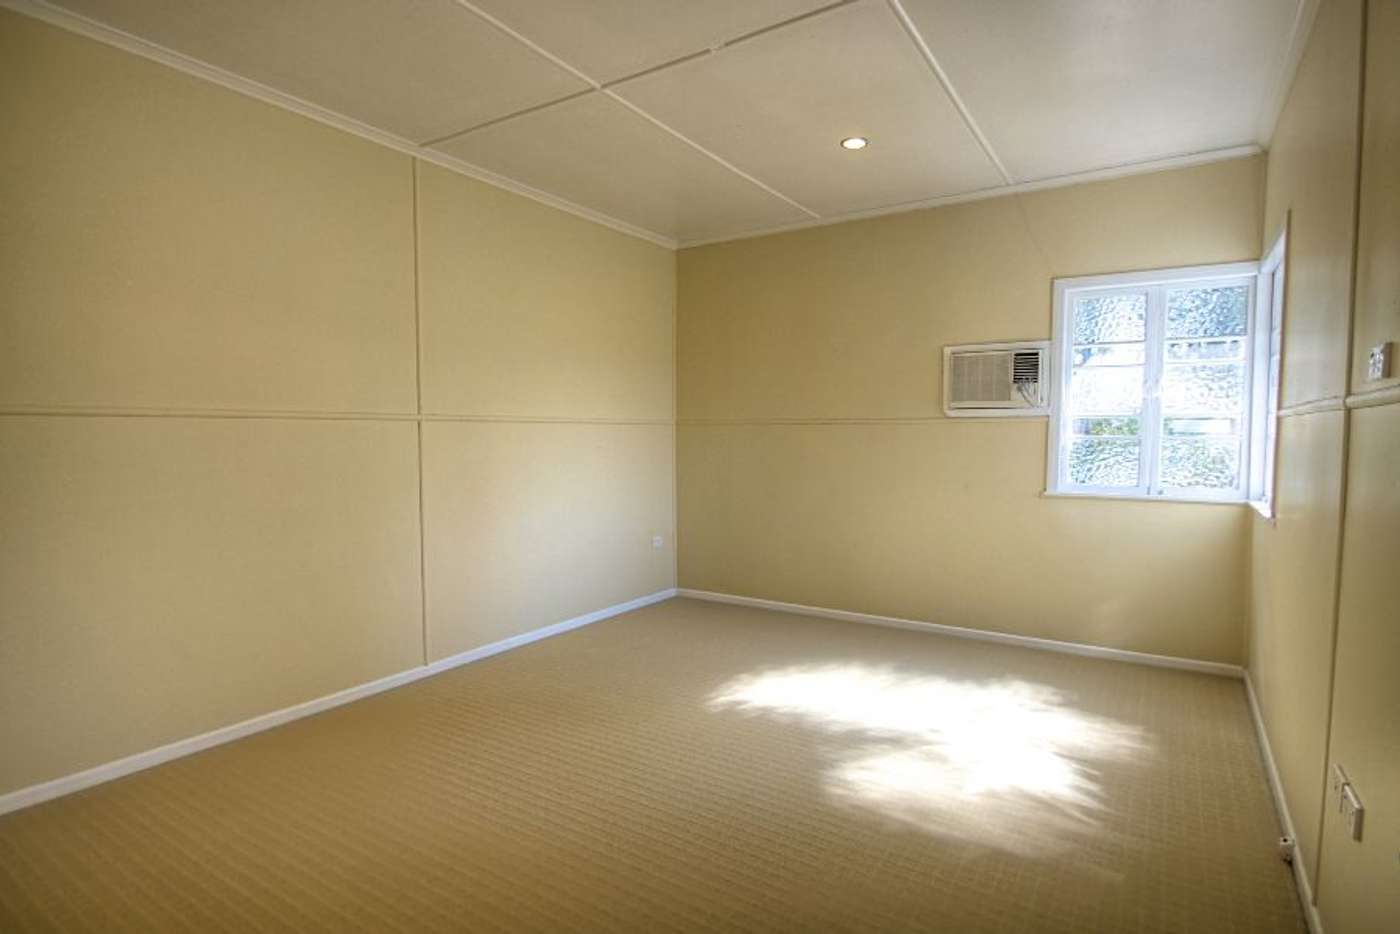 Sixth view of Homely house listing, 184 South Station Road, Silkstone QLD 4304